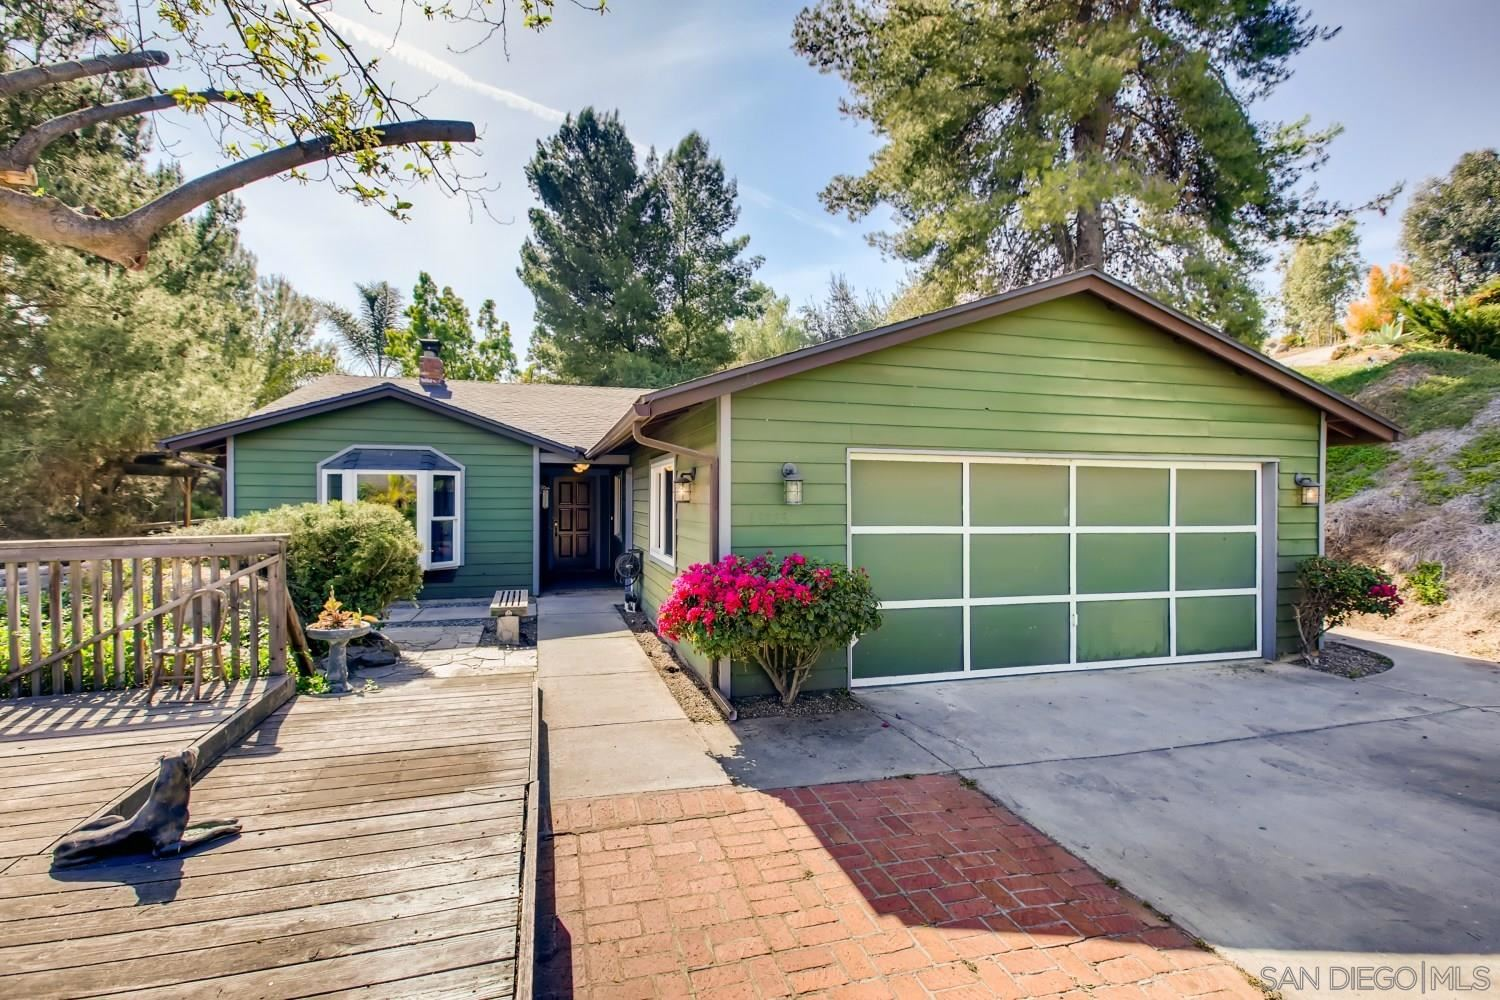 Photo of 13773 Lakeview Ct, Lakeside, CA 92040 (MLS # 210007921)